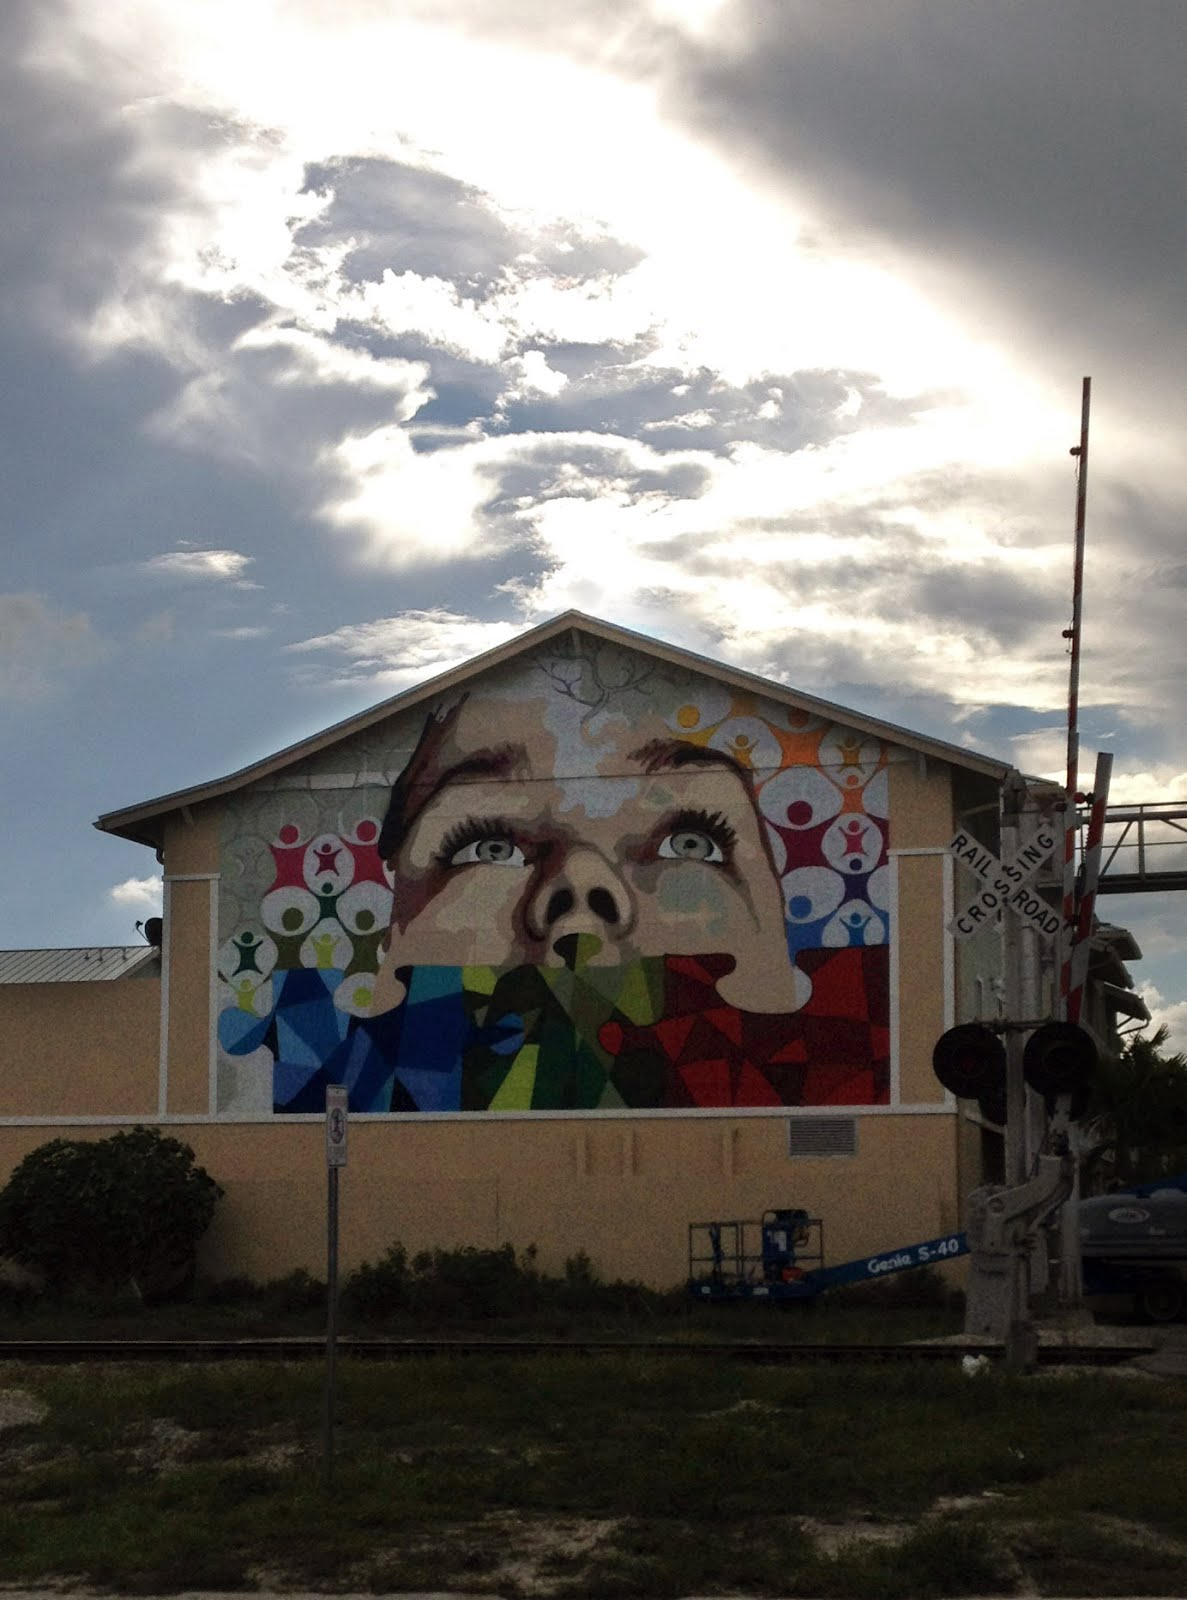 An artist looking for inspiration? Visit our charmingly quirky City of Lake Worth: